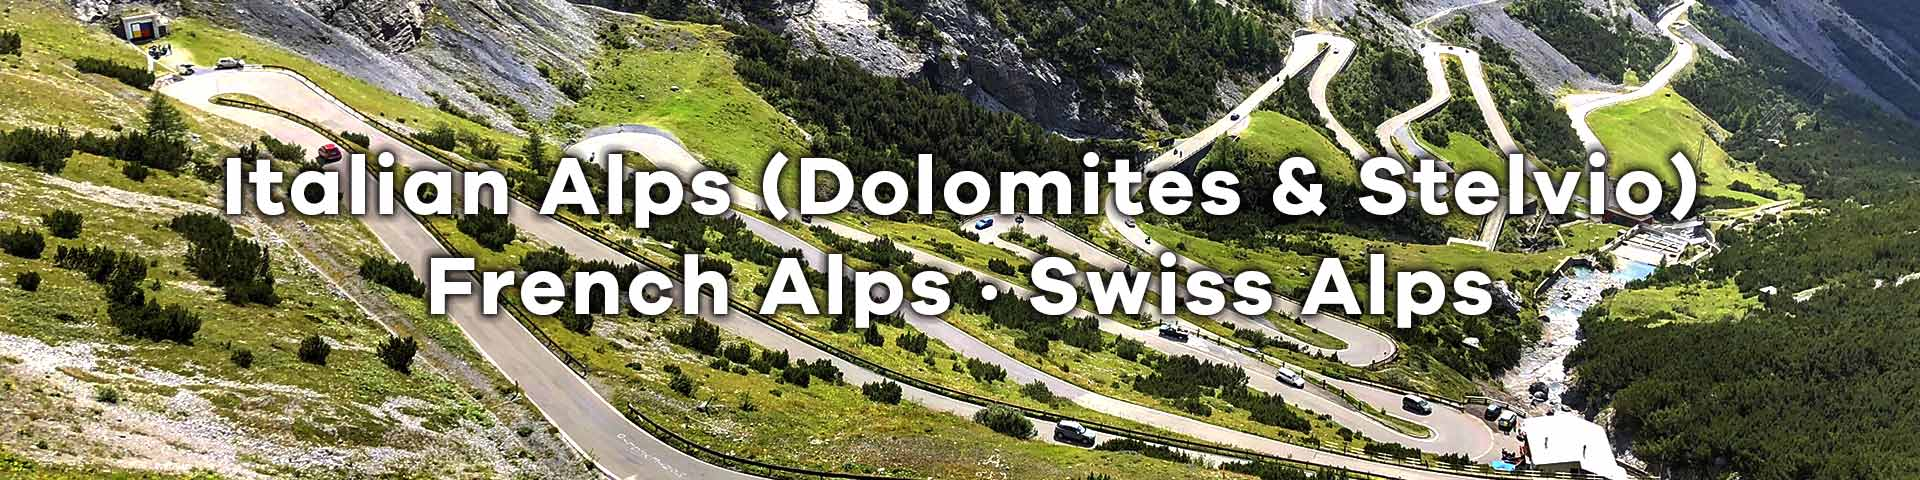 The switchbacks of Passo Fedaia in the Dolomites